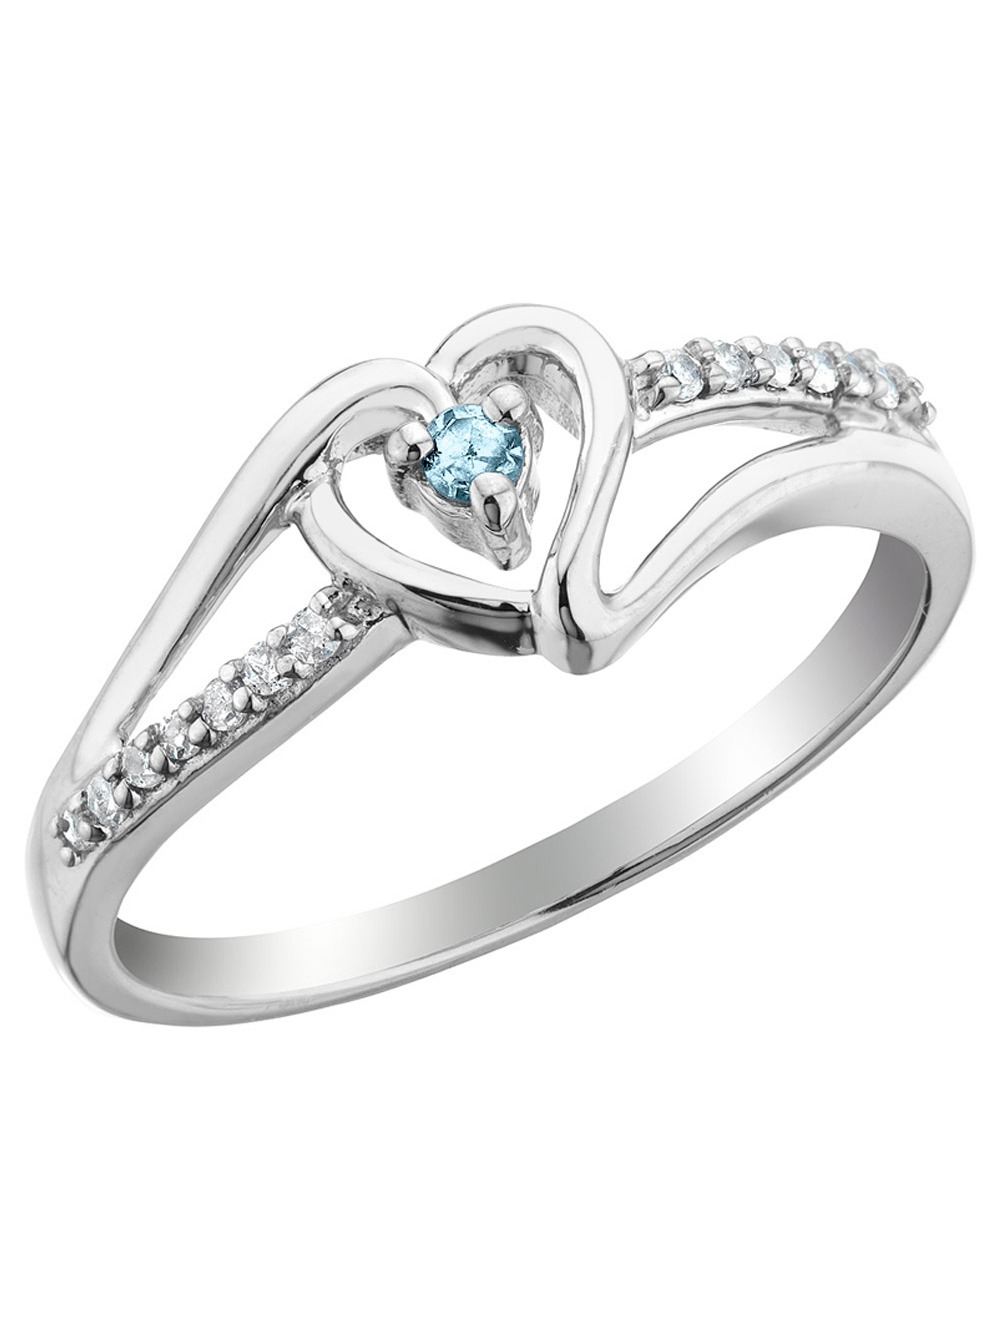 Aquamarine Heart Promise Ring with Diamonds in Sterling Silver